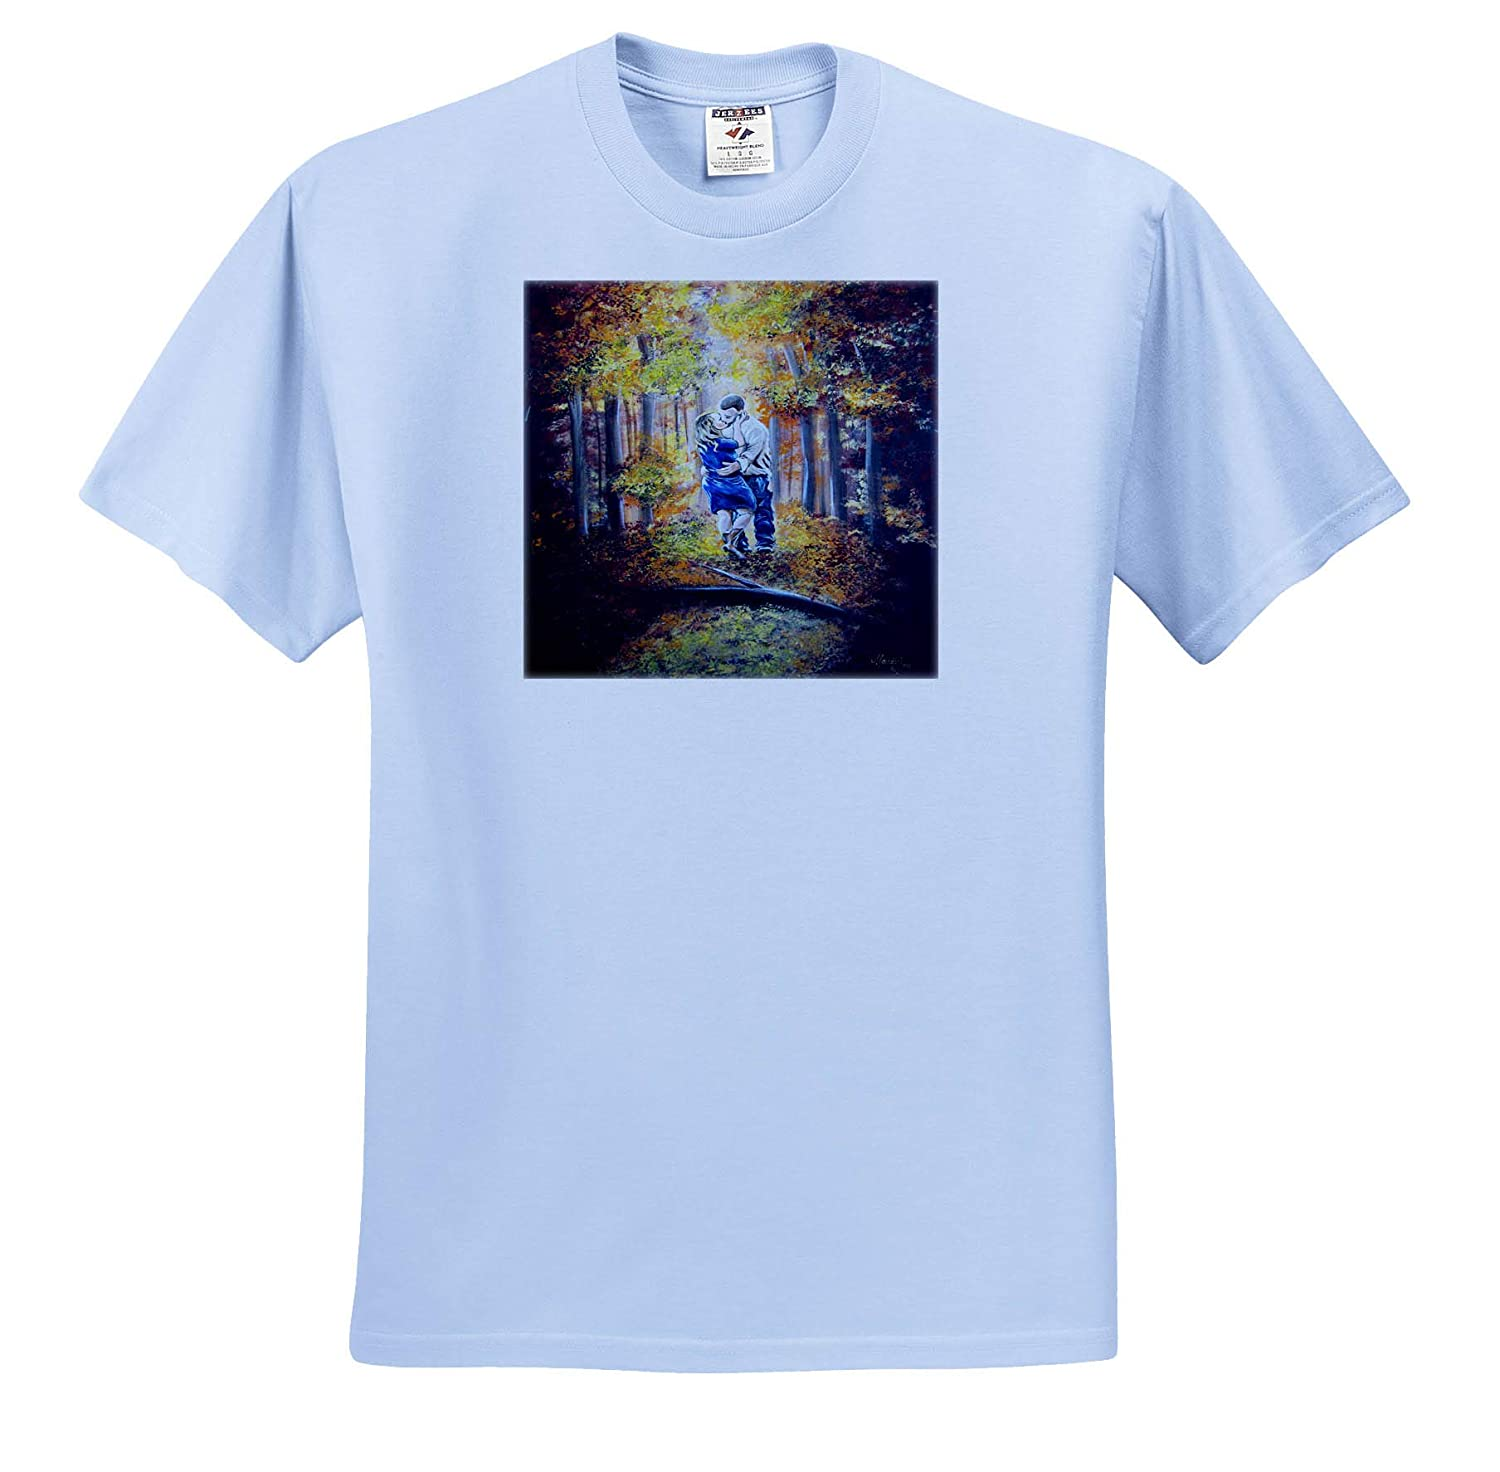 Trees People - T-Shirts 3dRose Art by Mandy Joy an Image of a Couple Kissing in a Forest